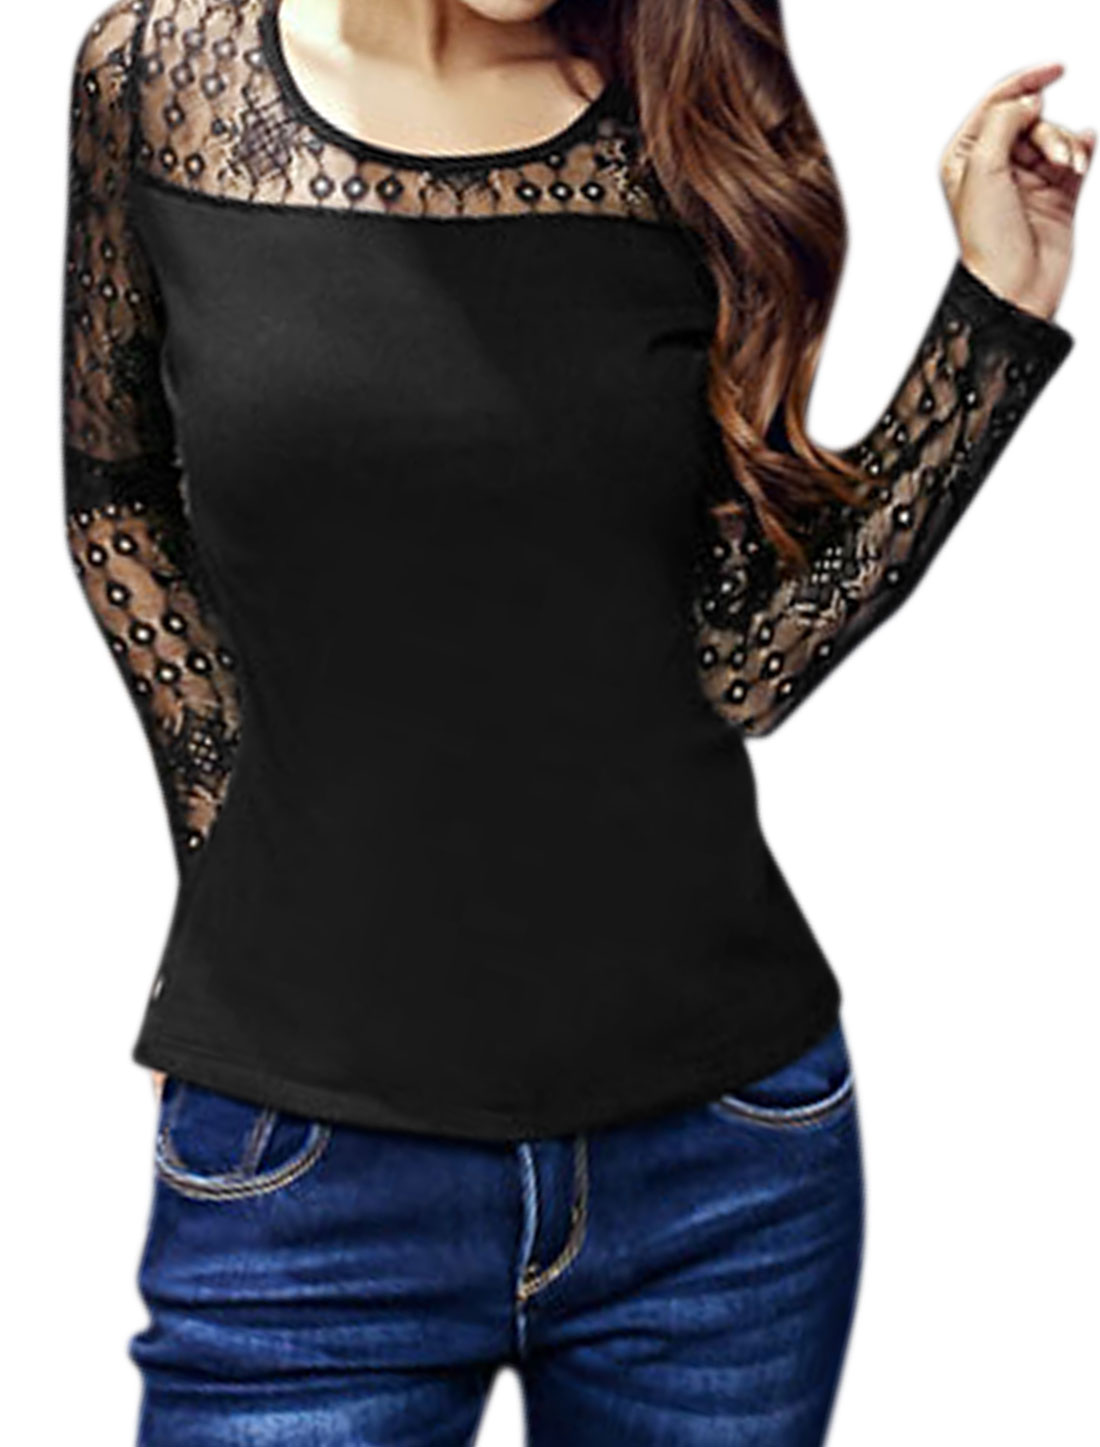 Women Round Neck Semi Sheer Upper Paneled Slim Fit Top Black XS